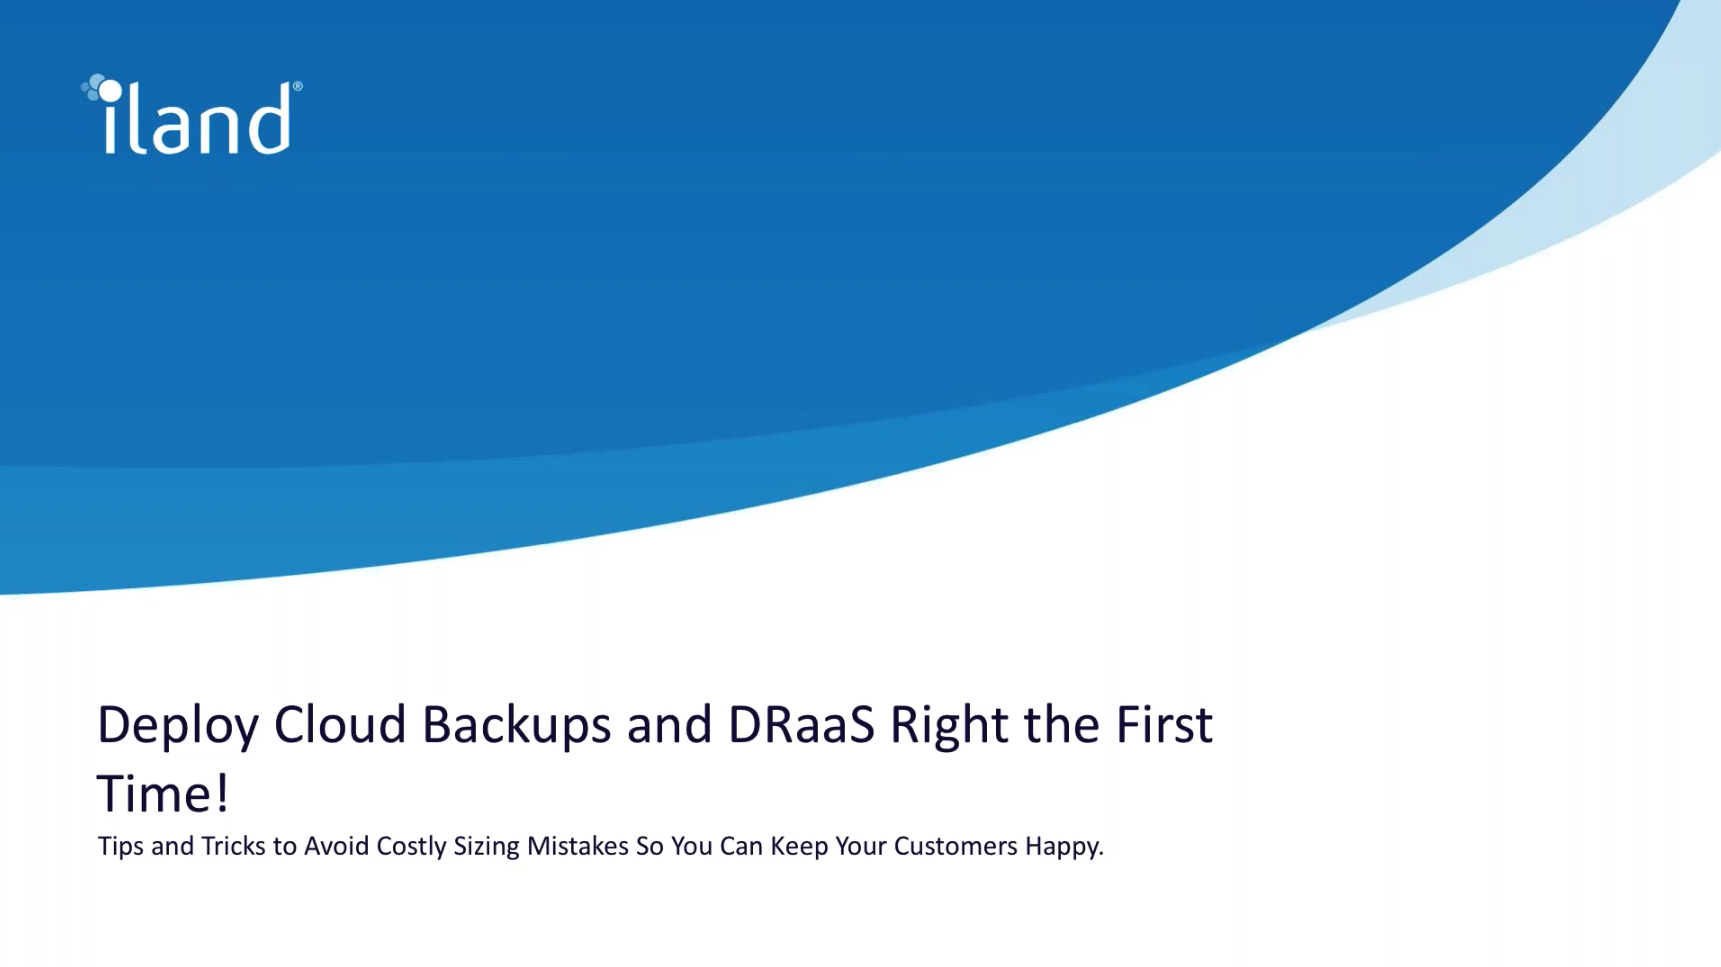 Deploy your customer's backups right the first time